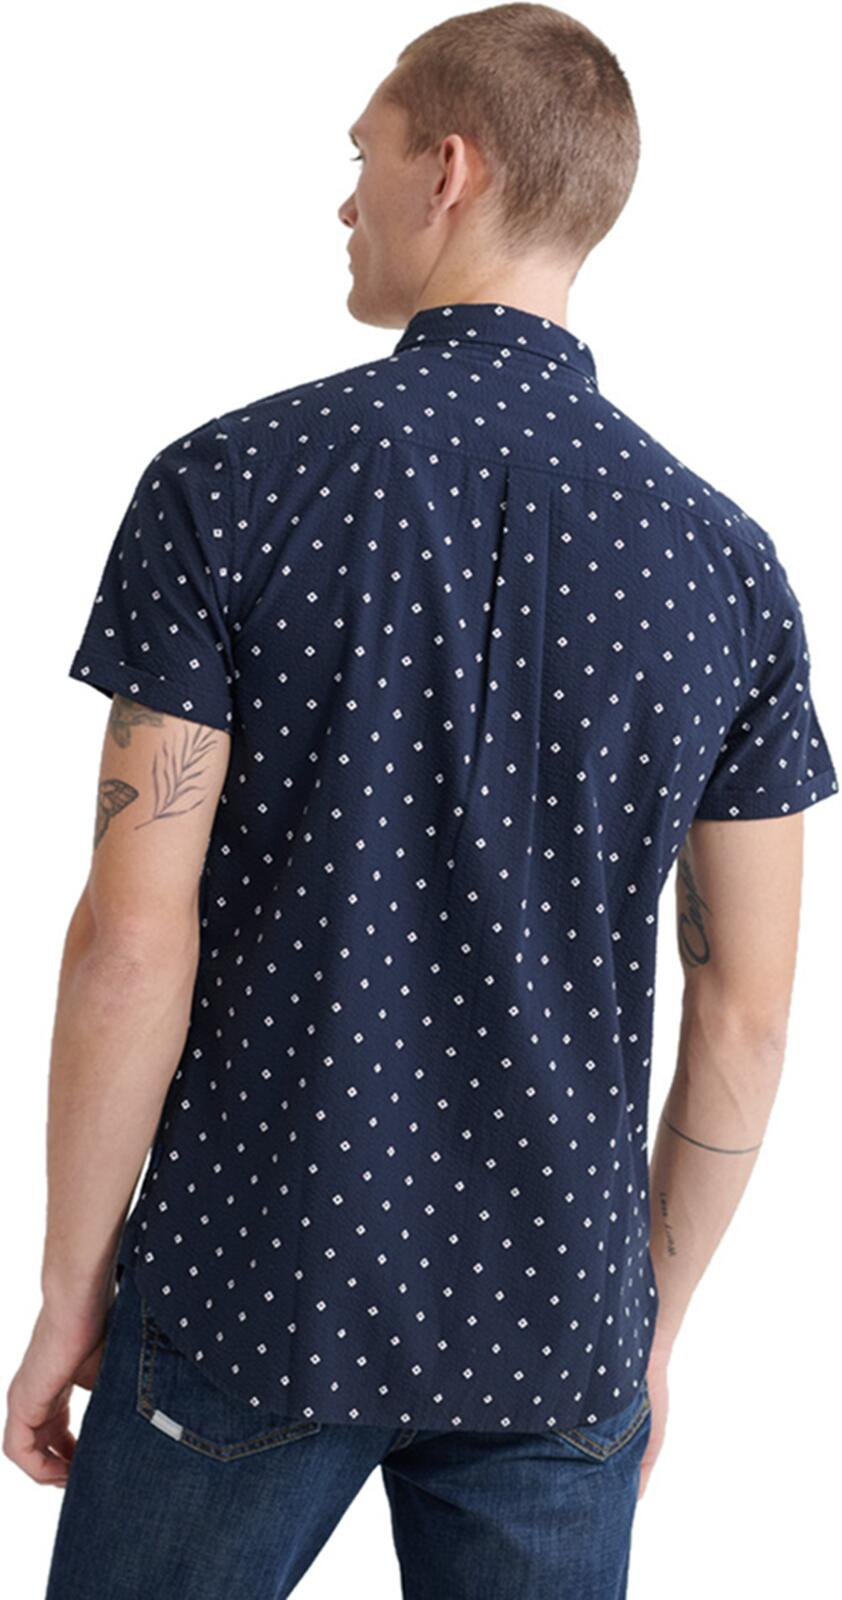 Superdry Classic Seersucker Shirt Navy